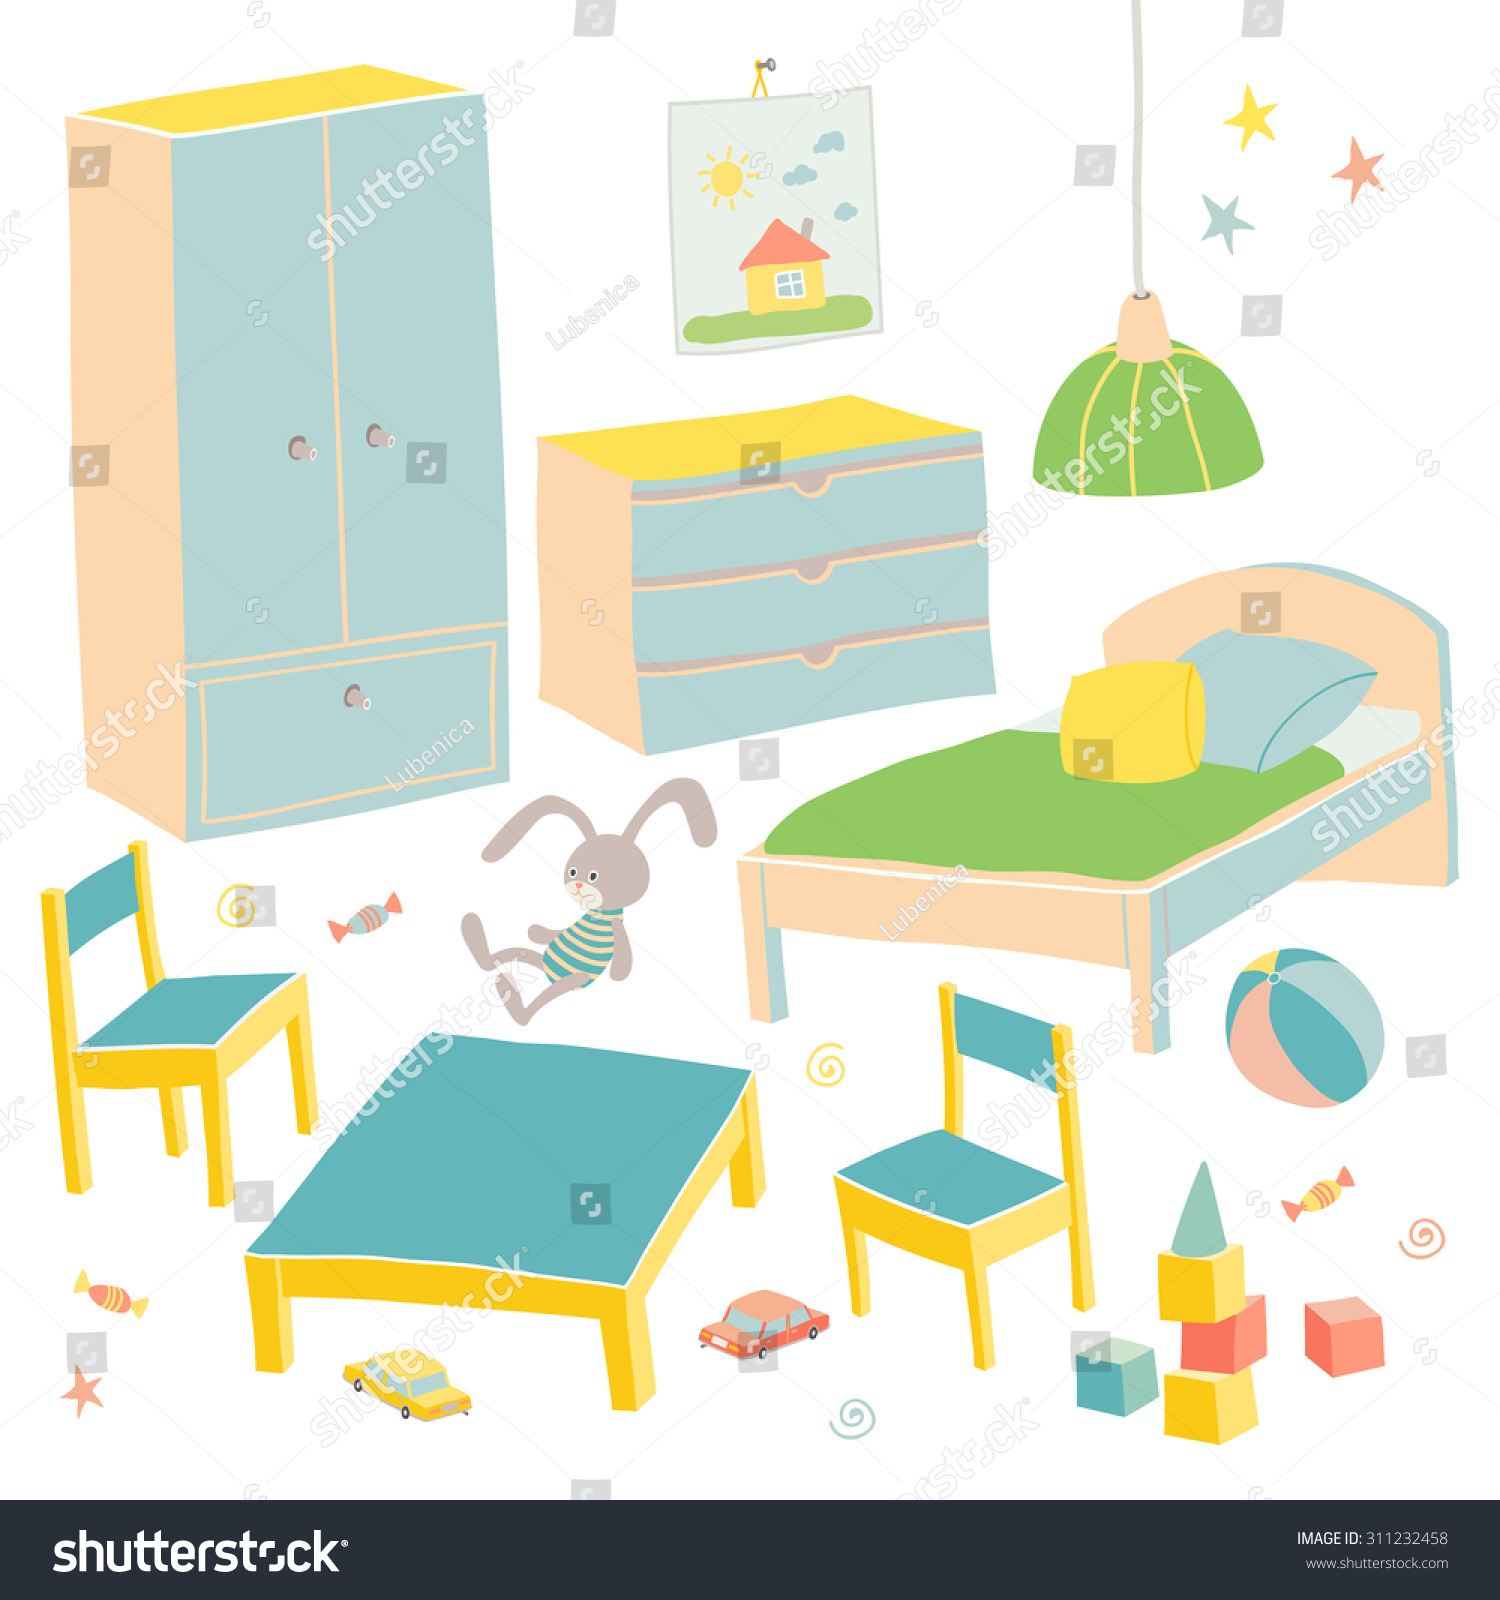 Image of: Set Furniture Children Room Kids Small Stock Vector Royalty Free 311232458